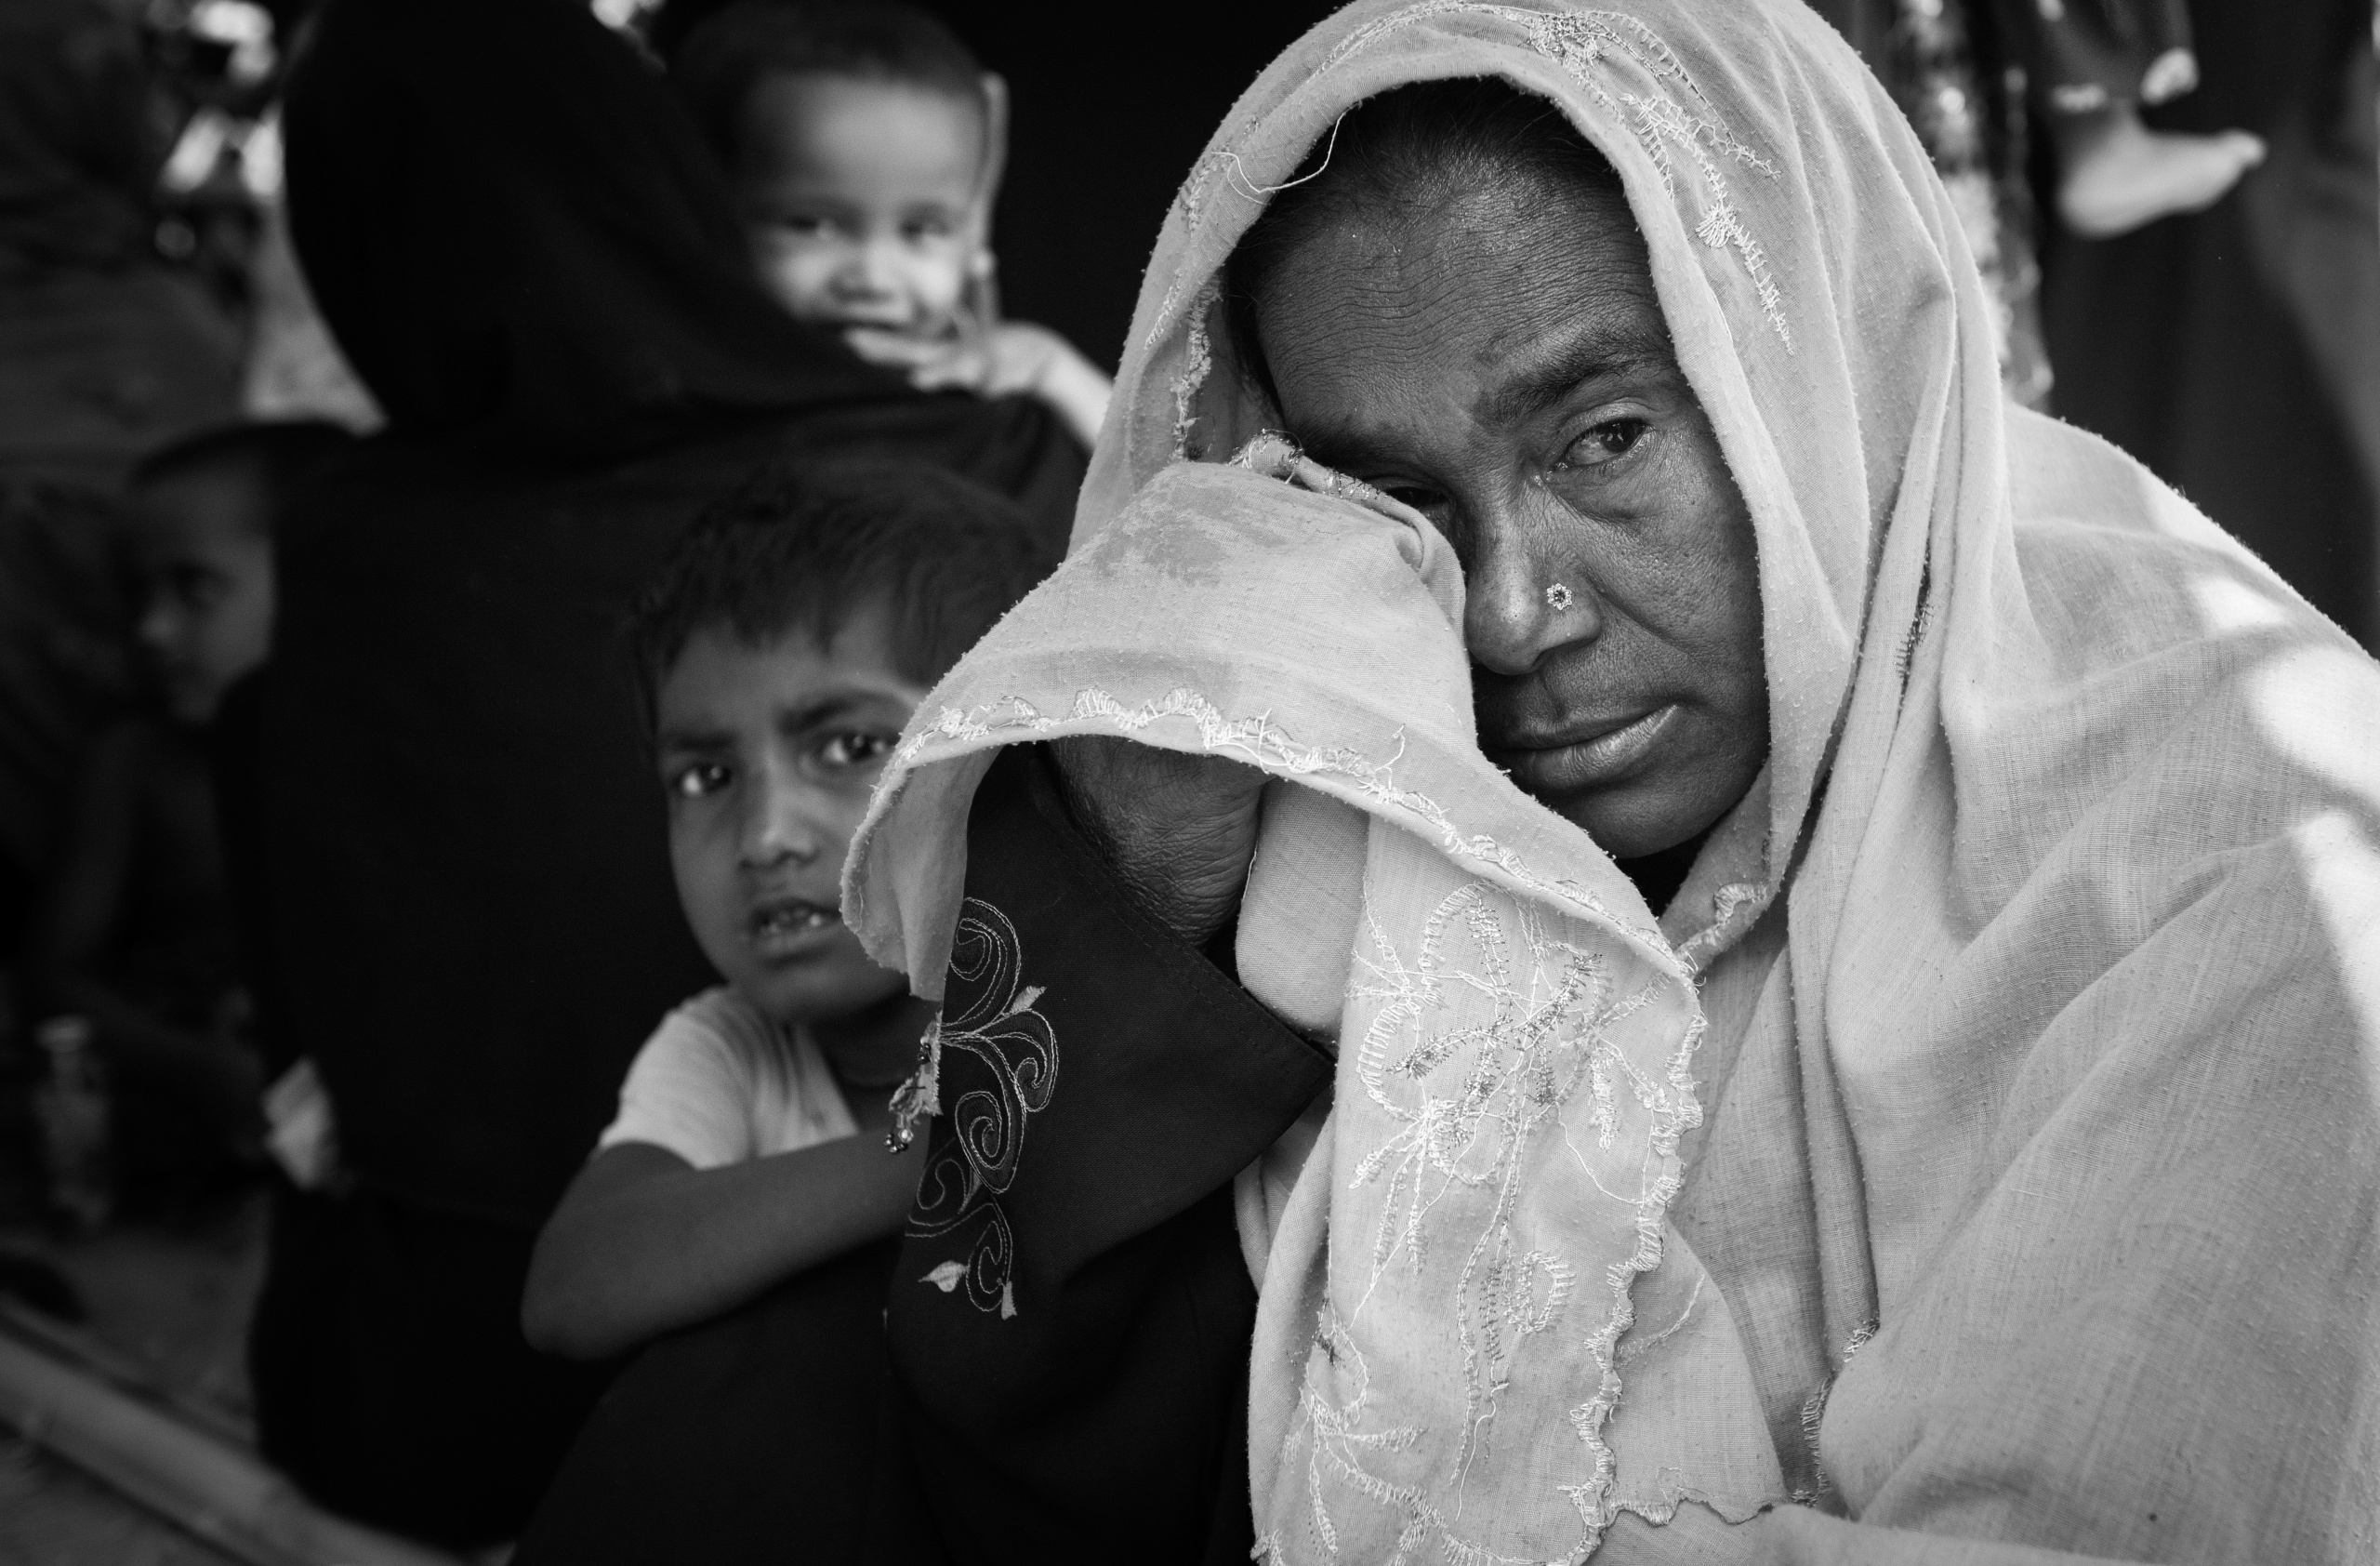 Bangladesh, Cox's Bazaar. Newly arrived Rohingya refugees waiting for food aid at Kutupalong camp on April 16, 2018 .Over 650,000 Rohingya have crossed the border to Bangladesh since August last year, fleeing the violence.